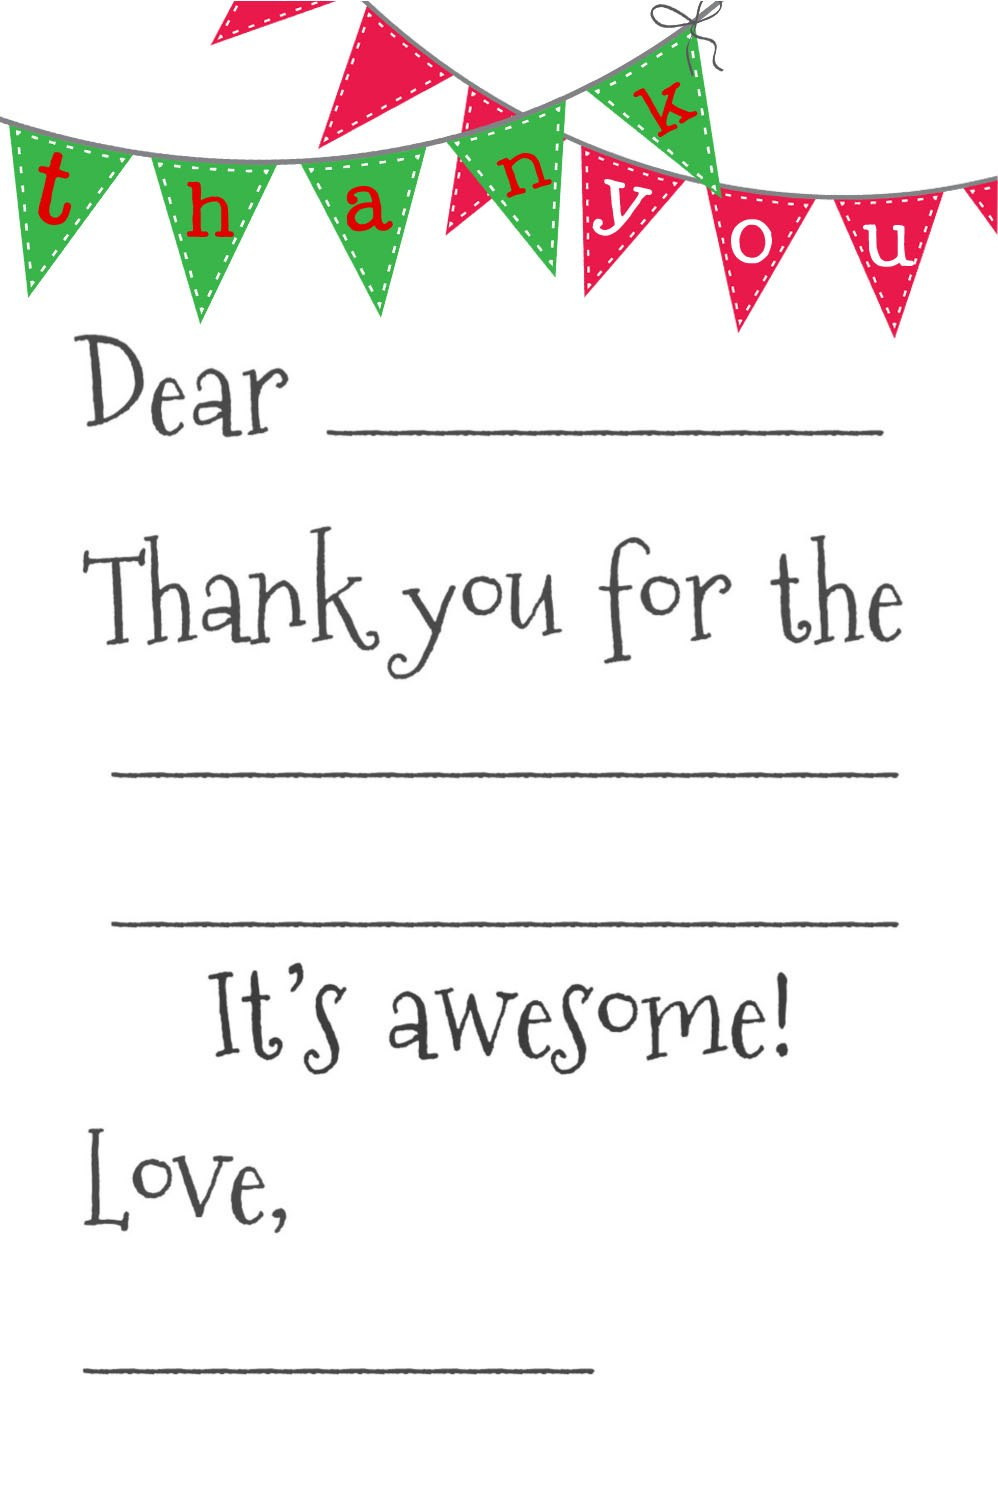 Printable Thank You Cards For All Purposes  Kittybabylove Inside Free Printable Thank You Card Template